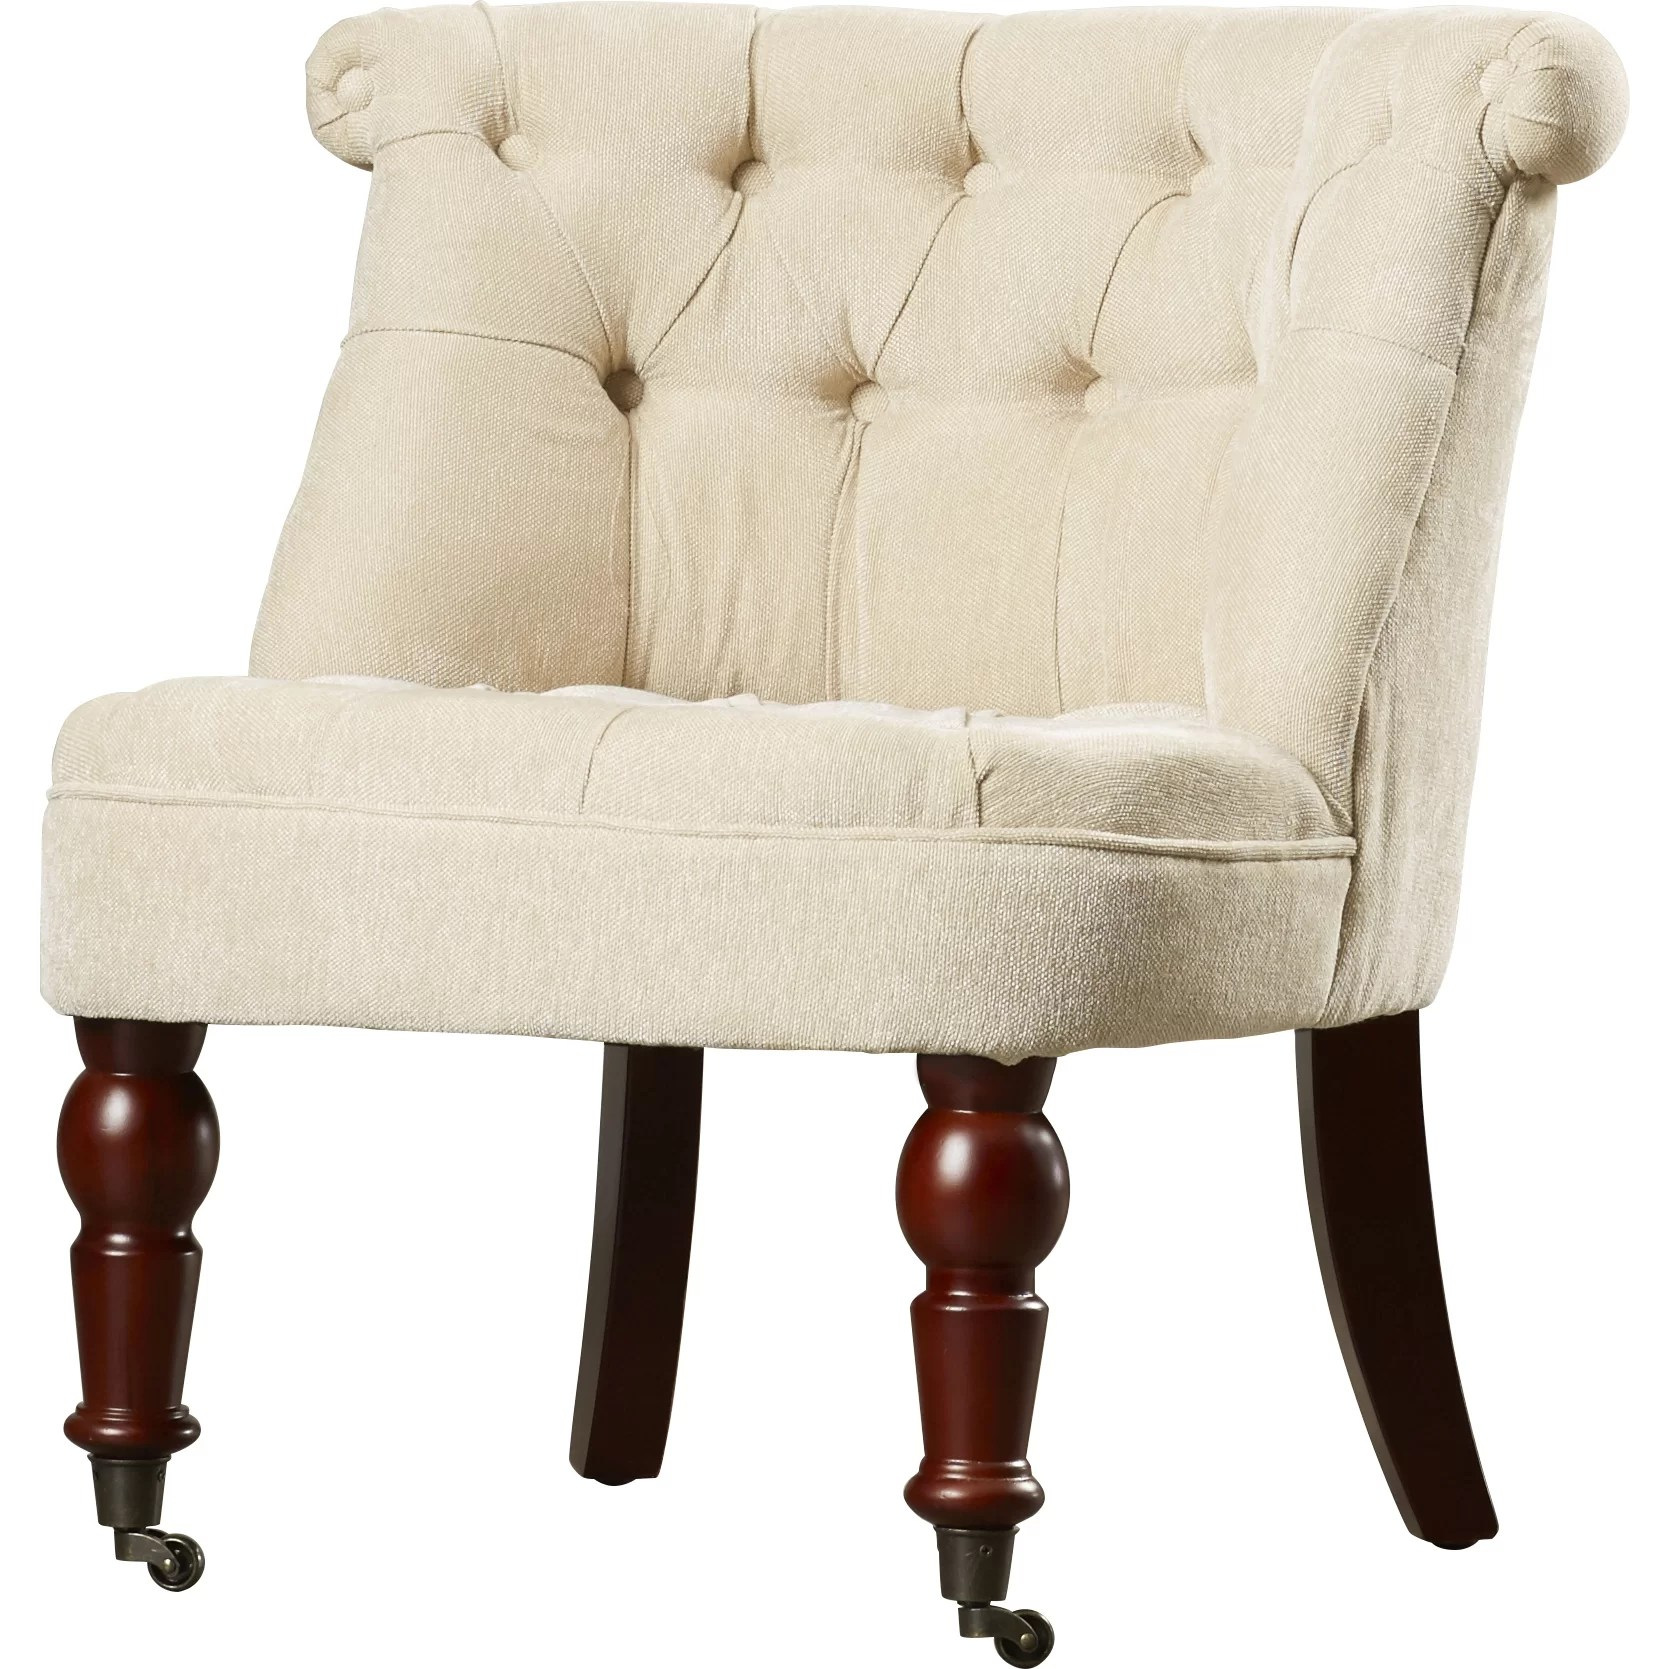 Tufted Slipper Chair Madrid Tufted Fabric Slipper Chair Wayfair